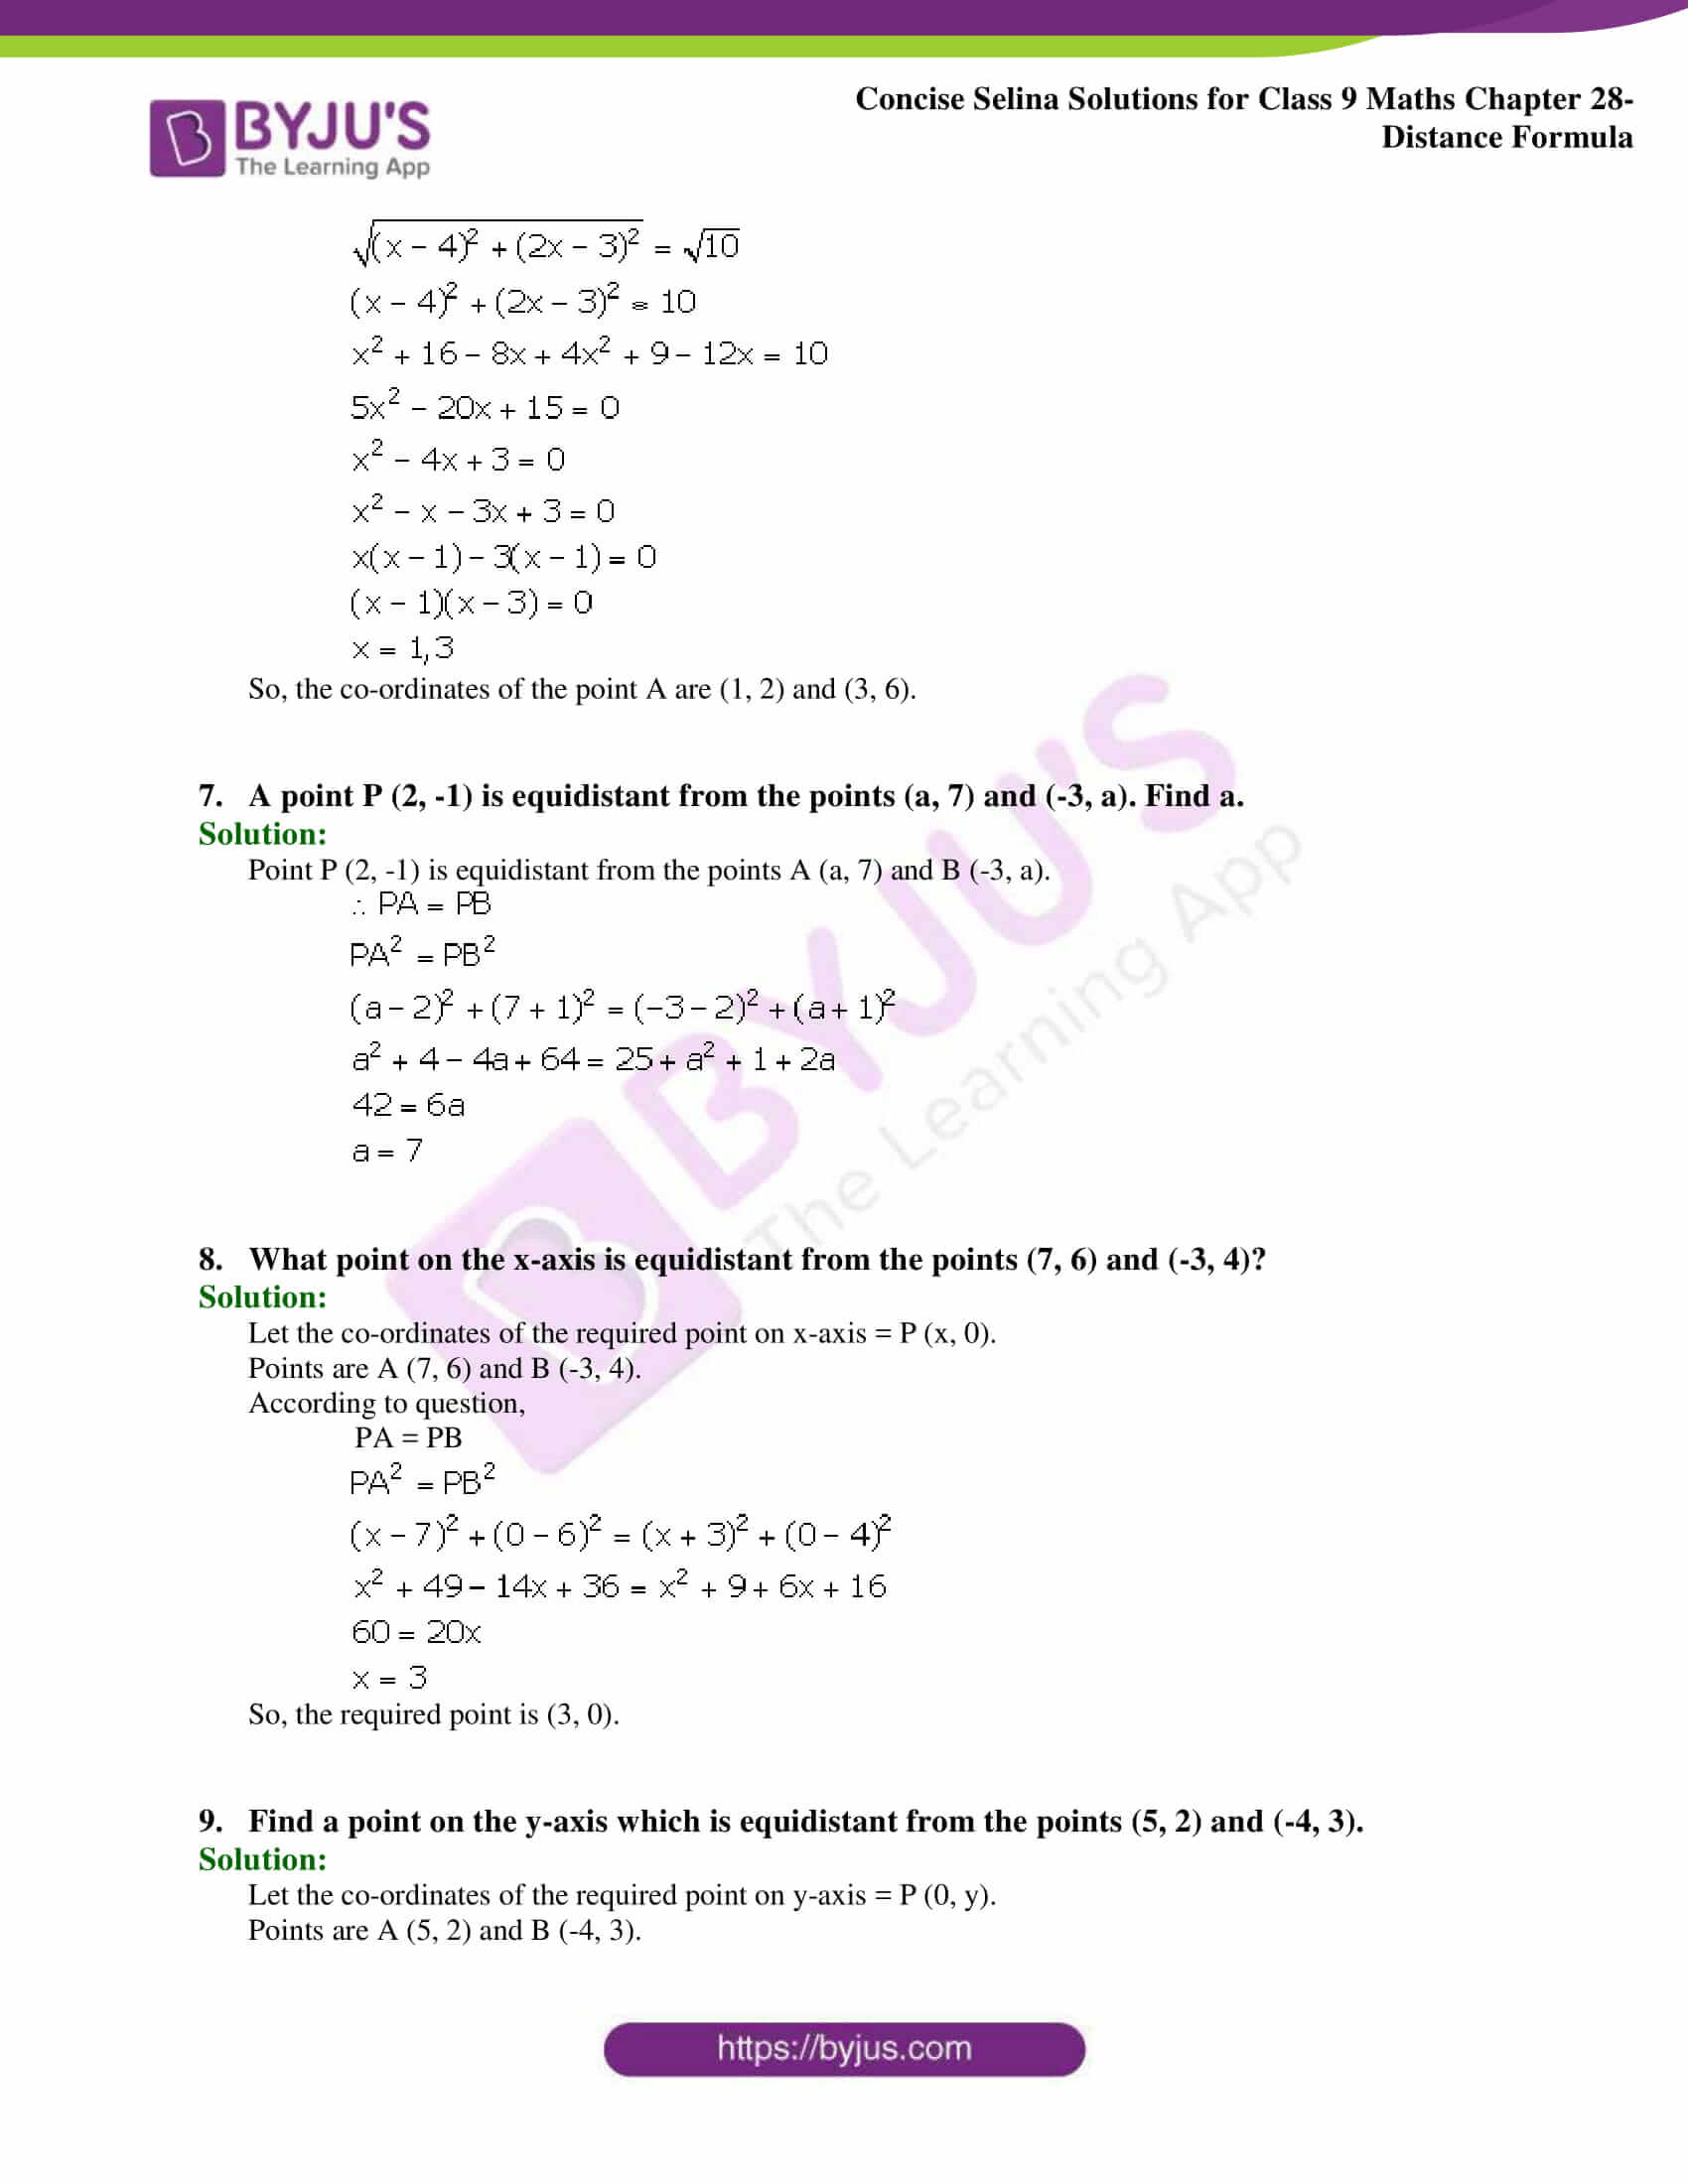 Concise Selina Solutions Class 9 Maths Chapter 28 Distance Formula part 04